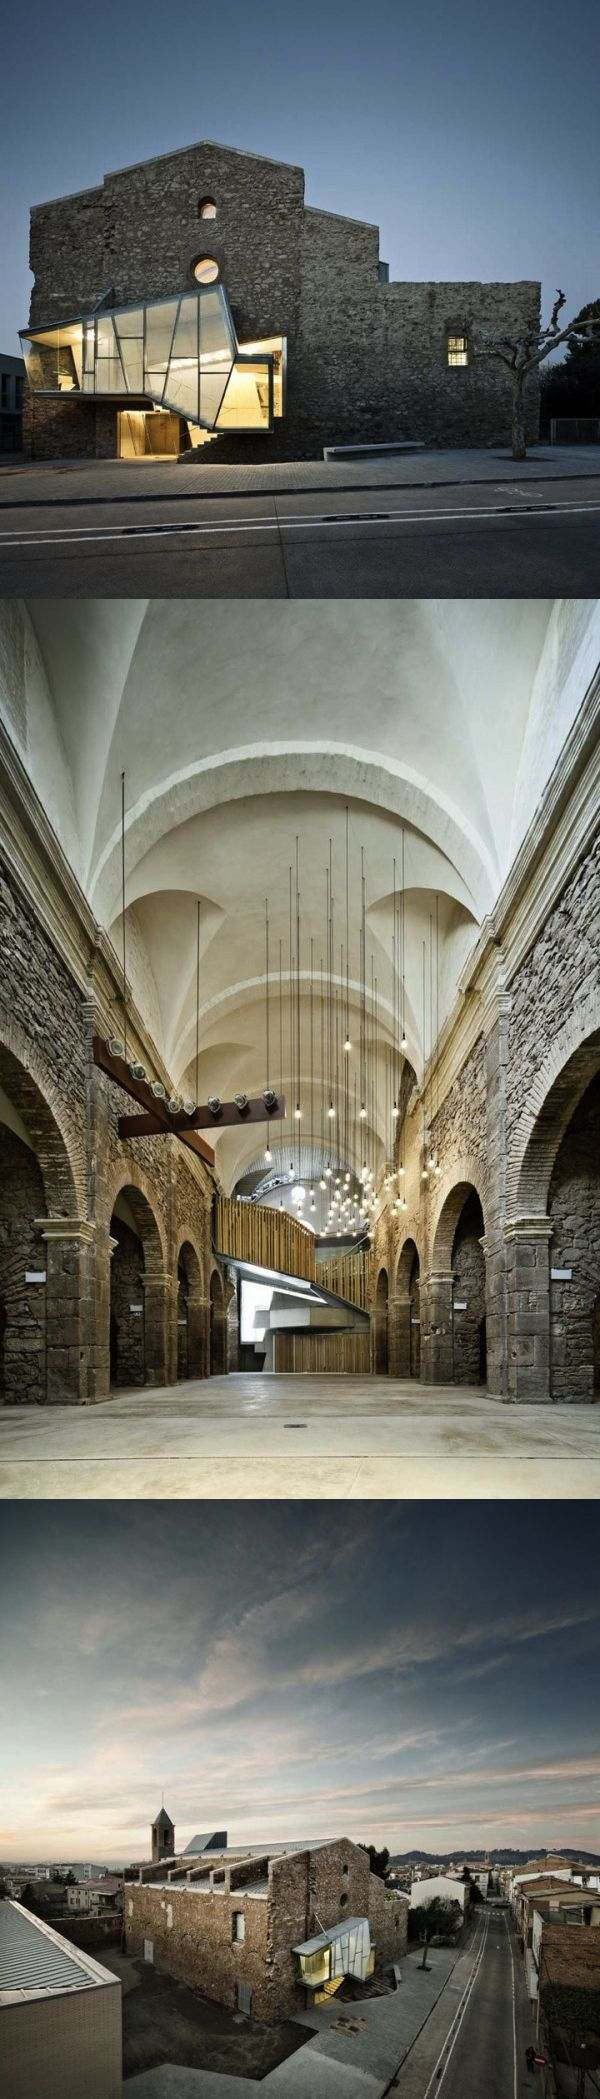 """The Reconversion of Sant Francesc Convent; by: David Closes Architects; """"The intervention preserves the historical heritage of the building and simultaneously adds new values which highlight and singularity the ancient church in a contemporary way."""" &;;"""